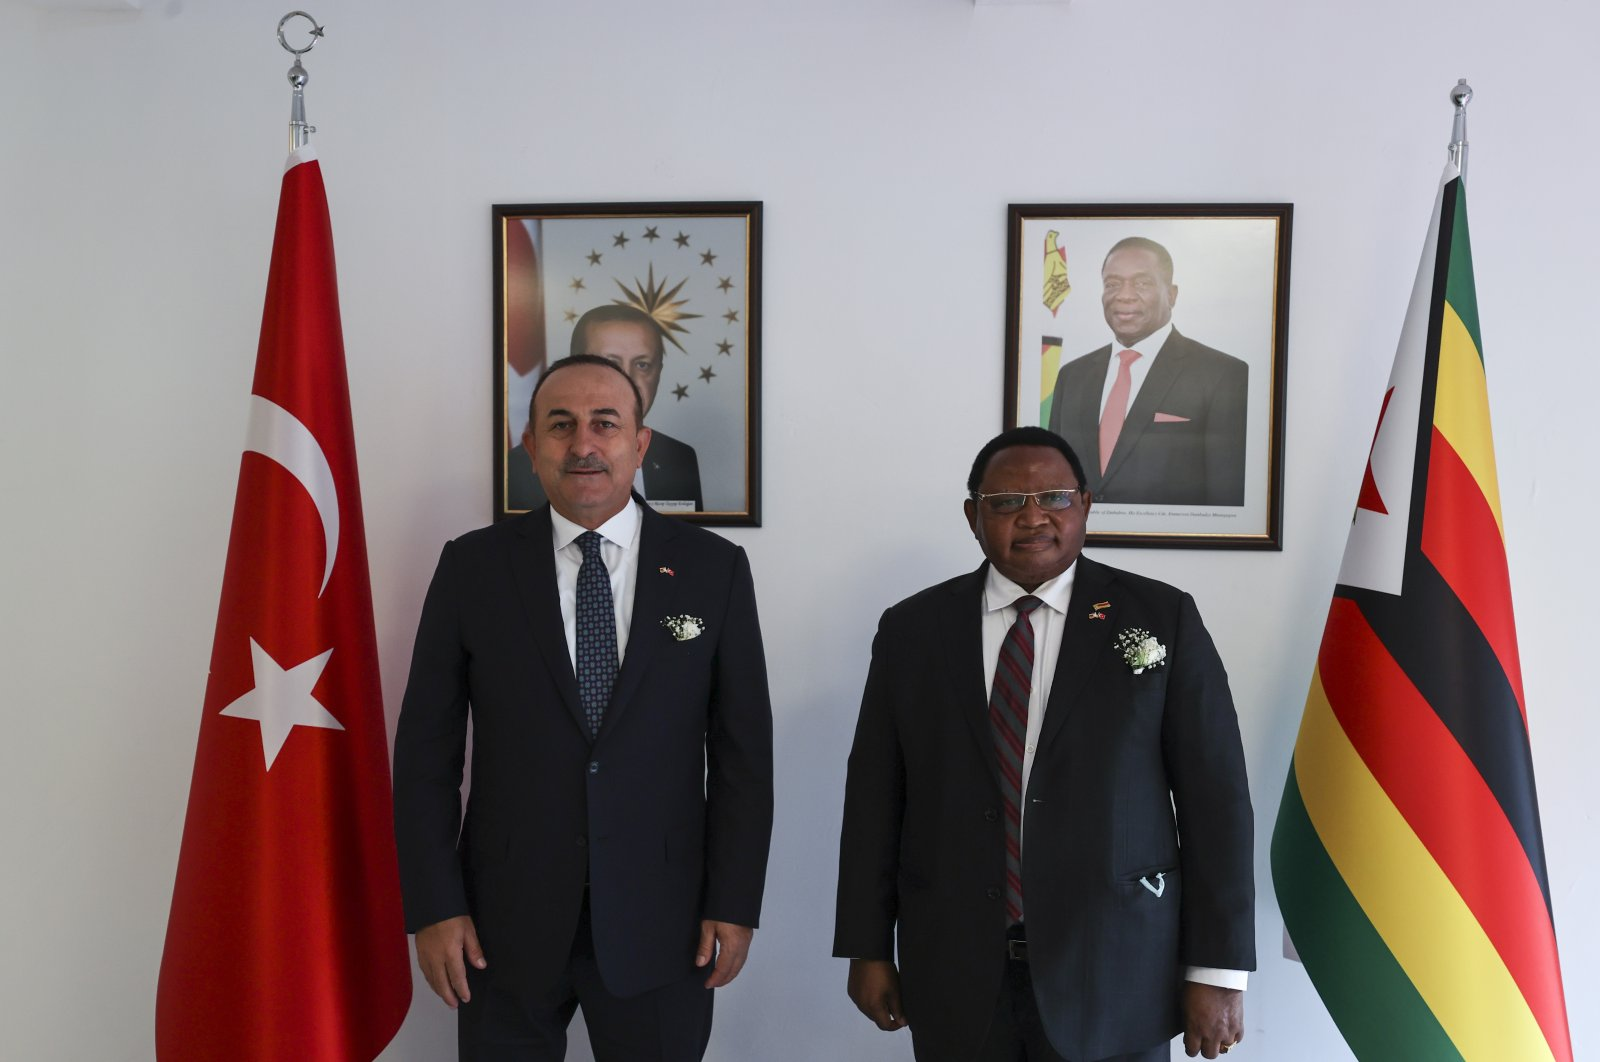 Turkish Foreign Minister Mevlüt Çavuşoğlu poses with his Zimbabwean counterpart Frederick Shava at the opening ceremony of Zimbabwe's Embassy in Ankara, Turkey, June 13, 2021. (AA Photo)